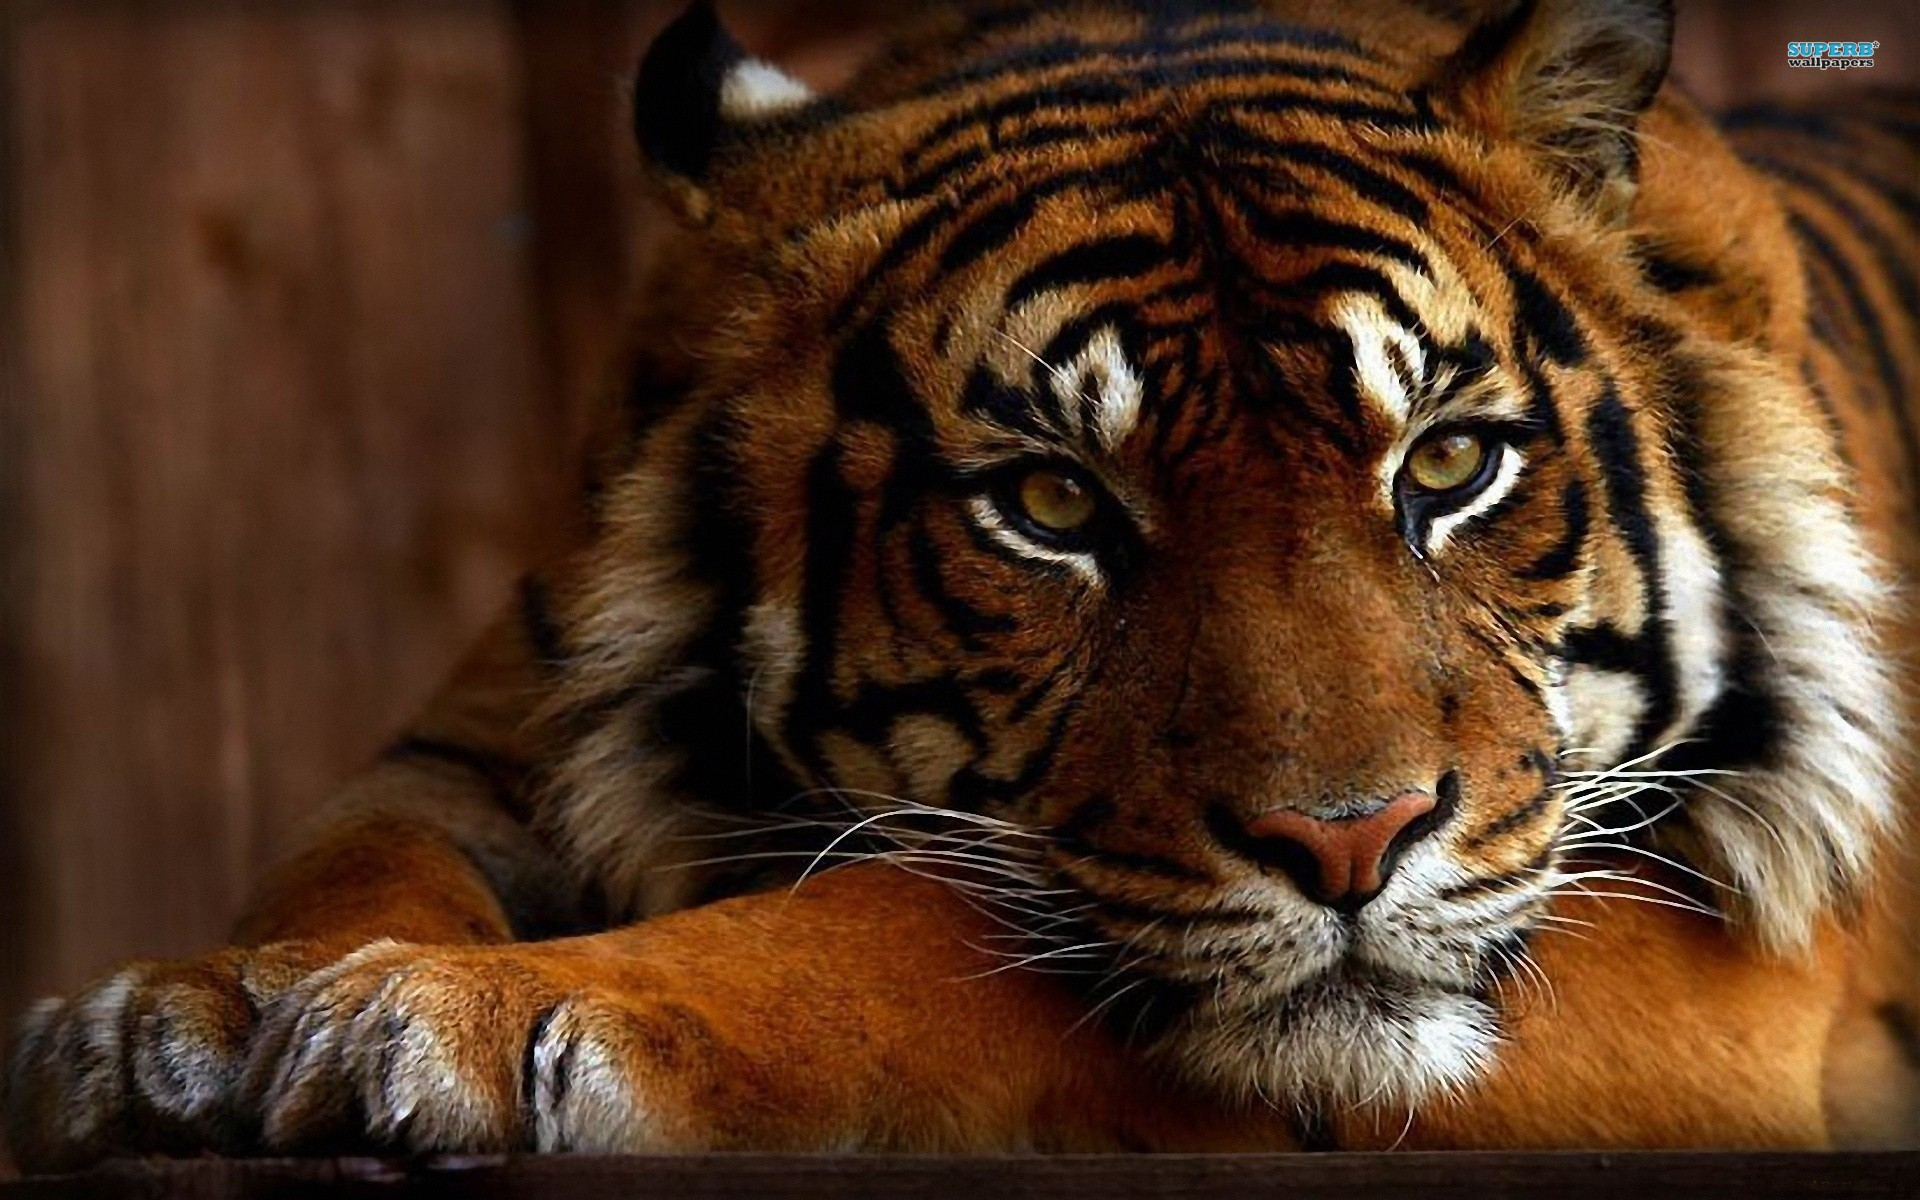 Stunning Tiger wallpaper